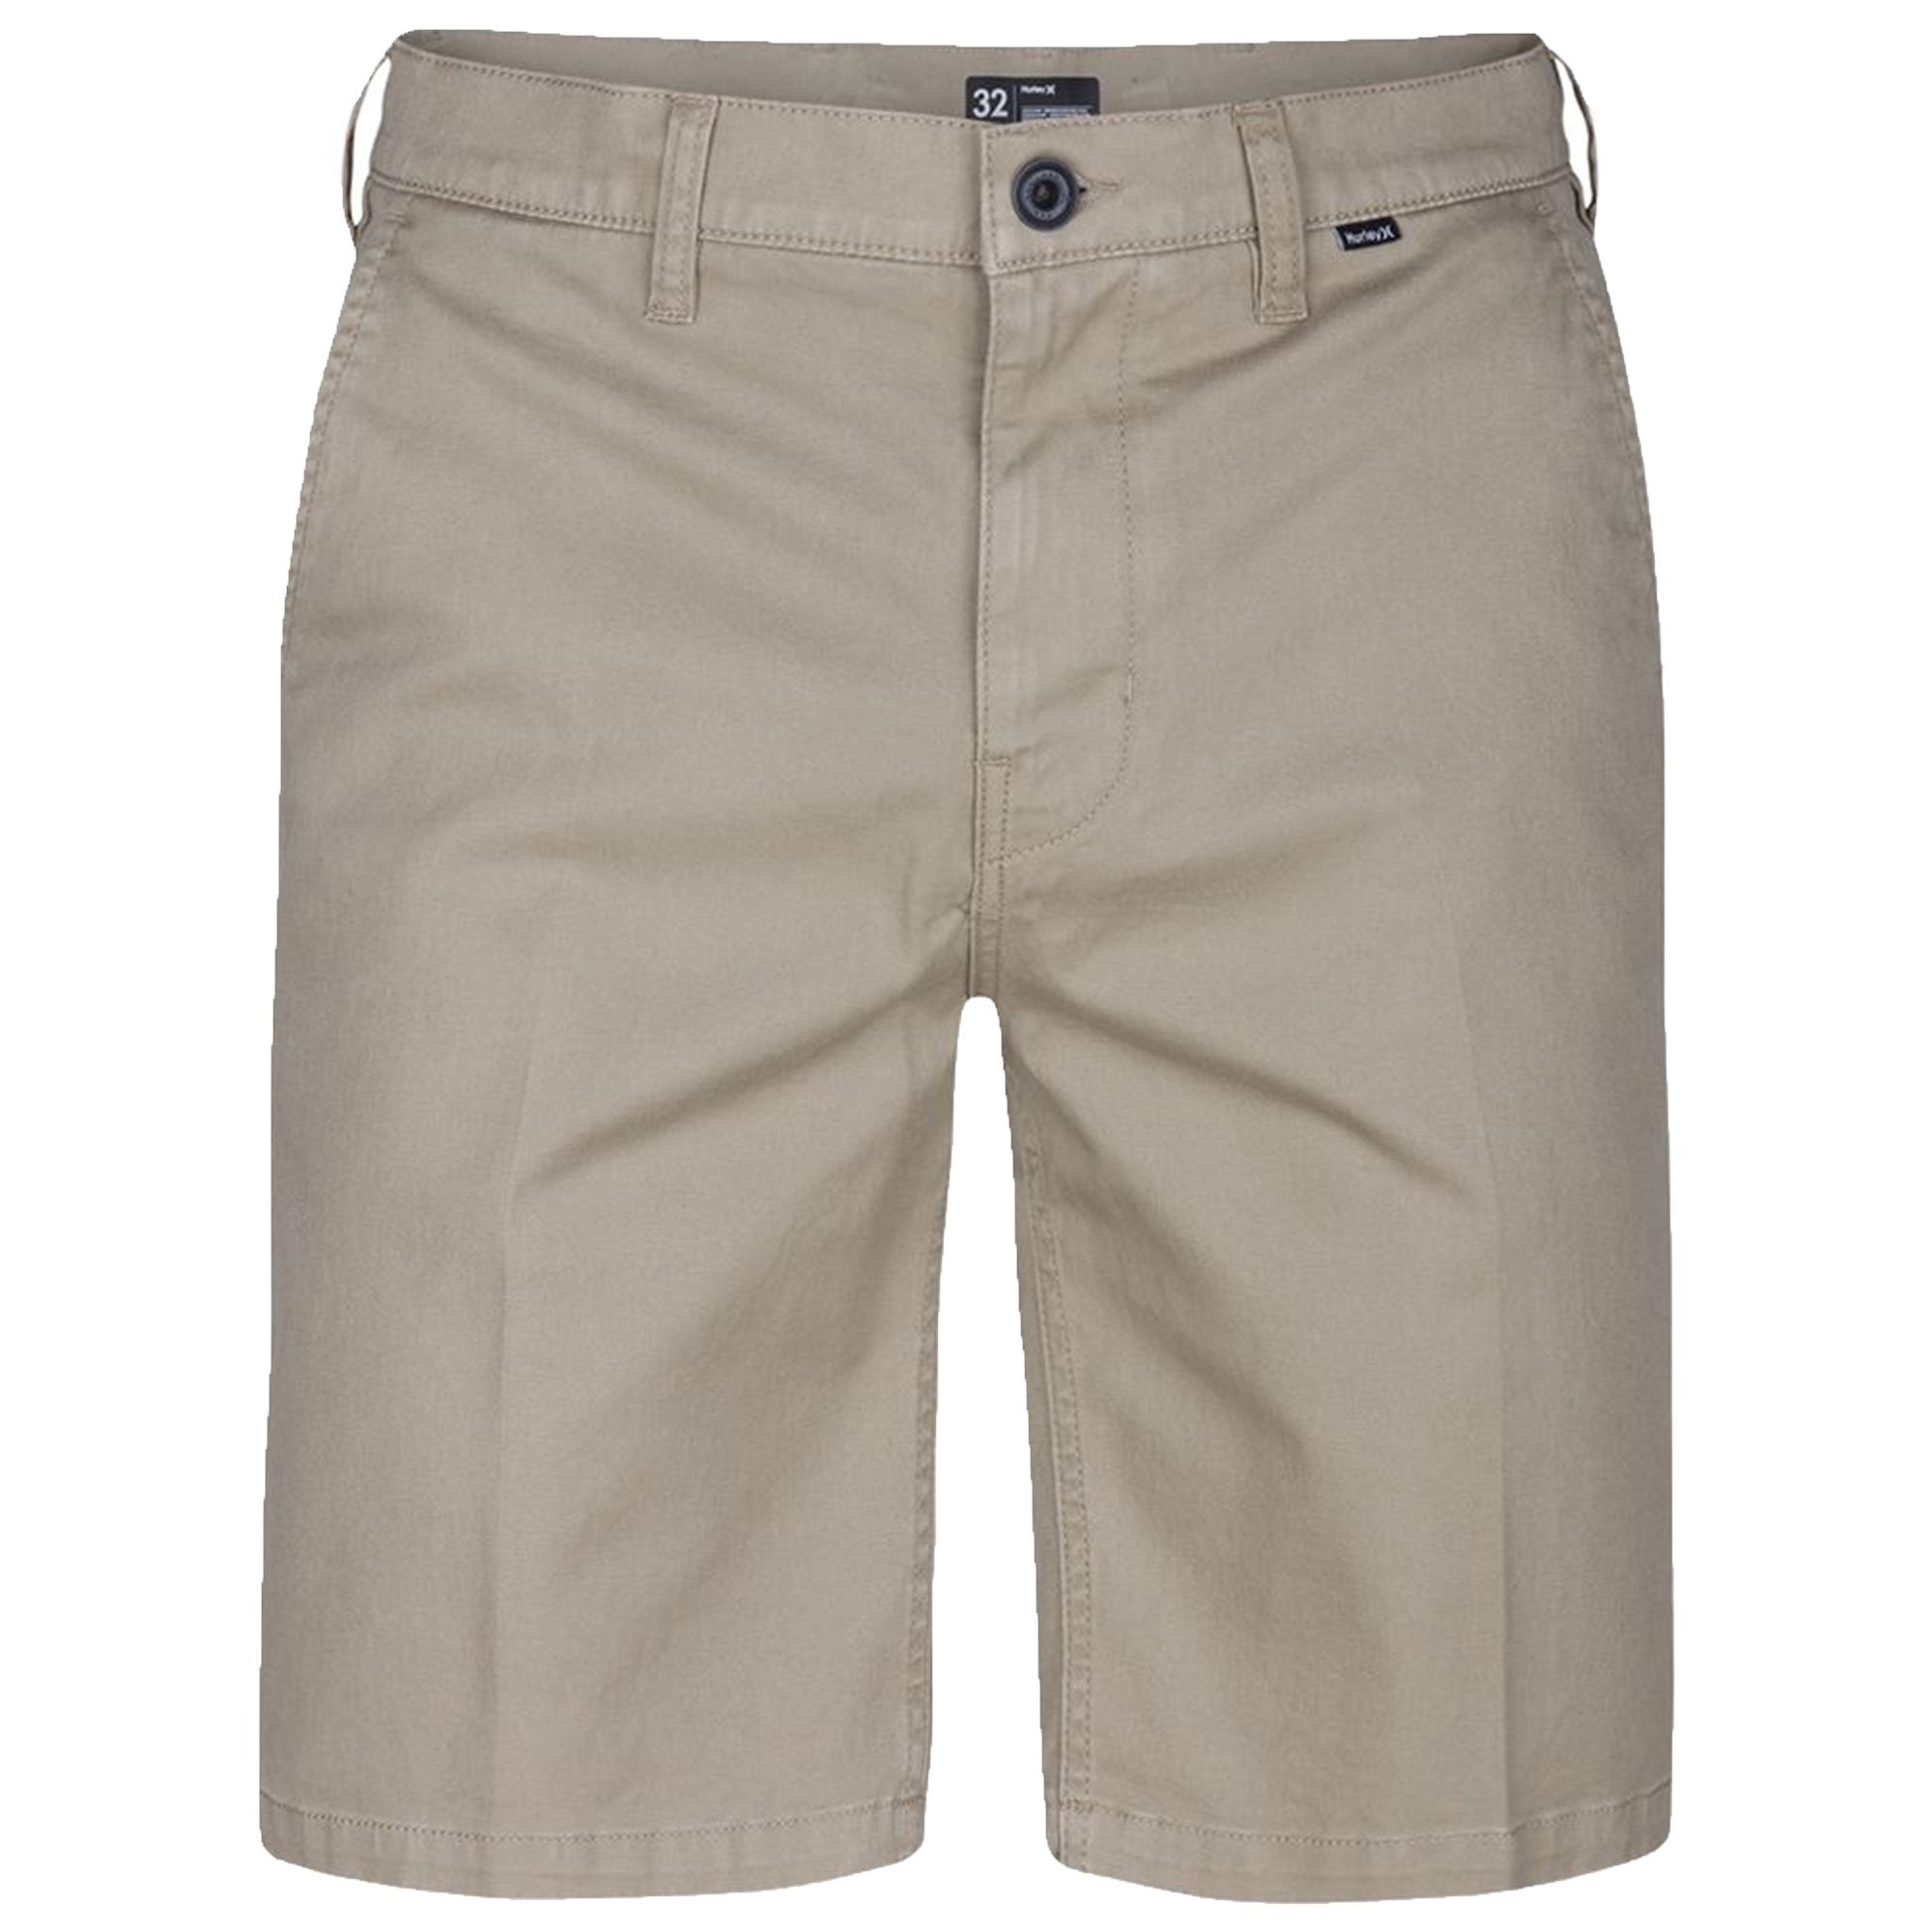 Hurley Men's One & Only Chino 2.0 Walkshort, Khaki, 30